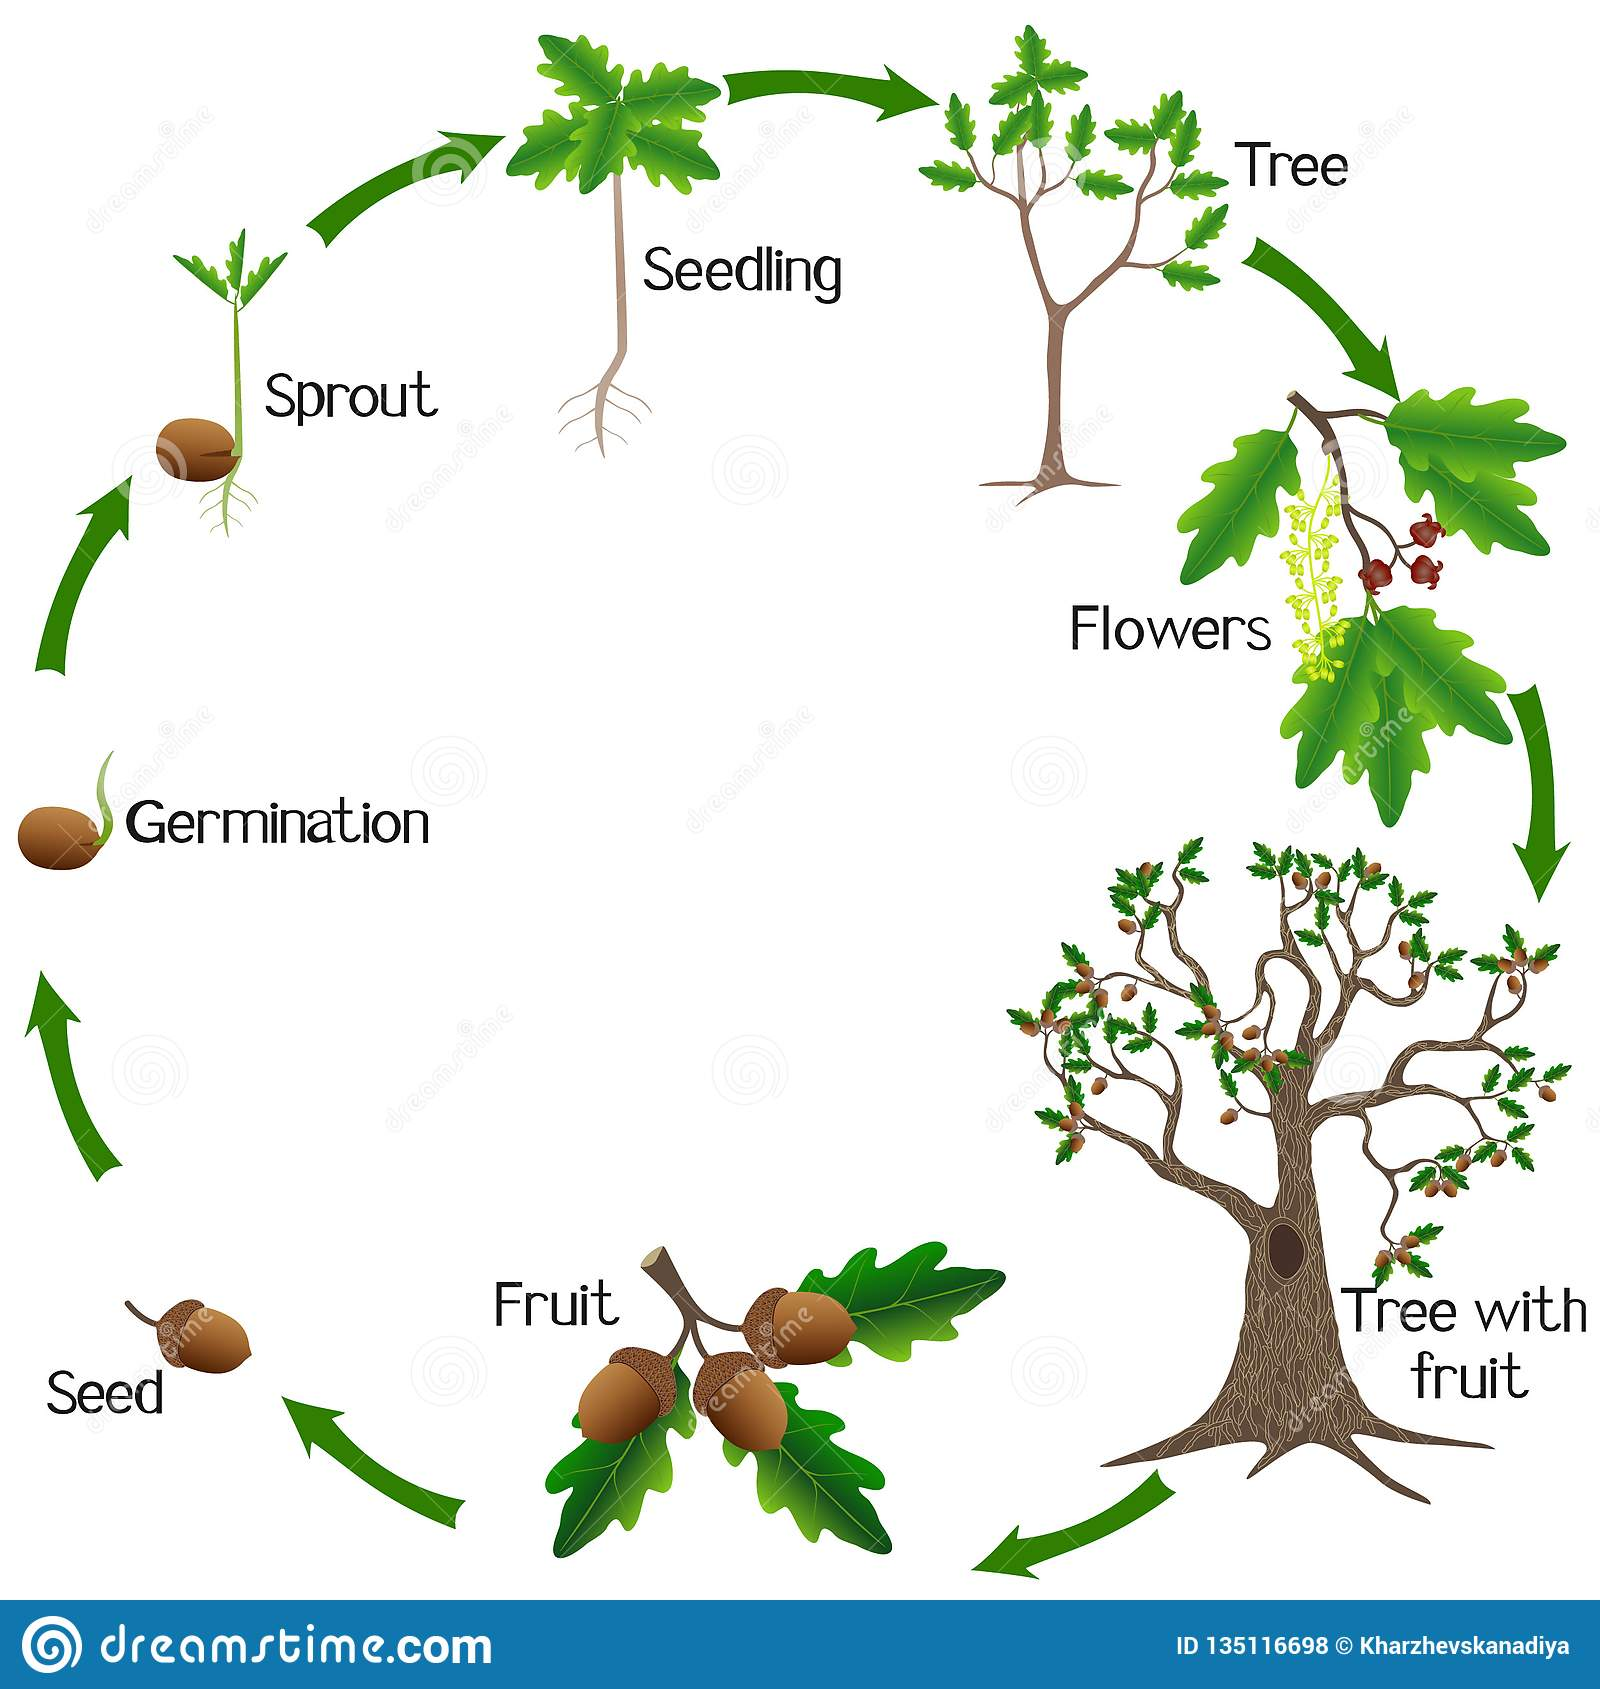 life-cycle-oak-tree-white-background-bea